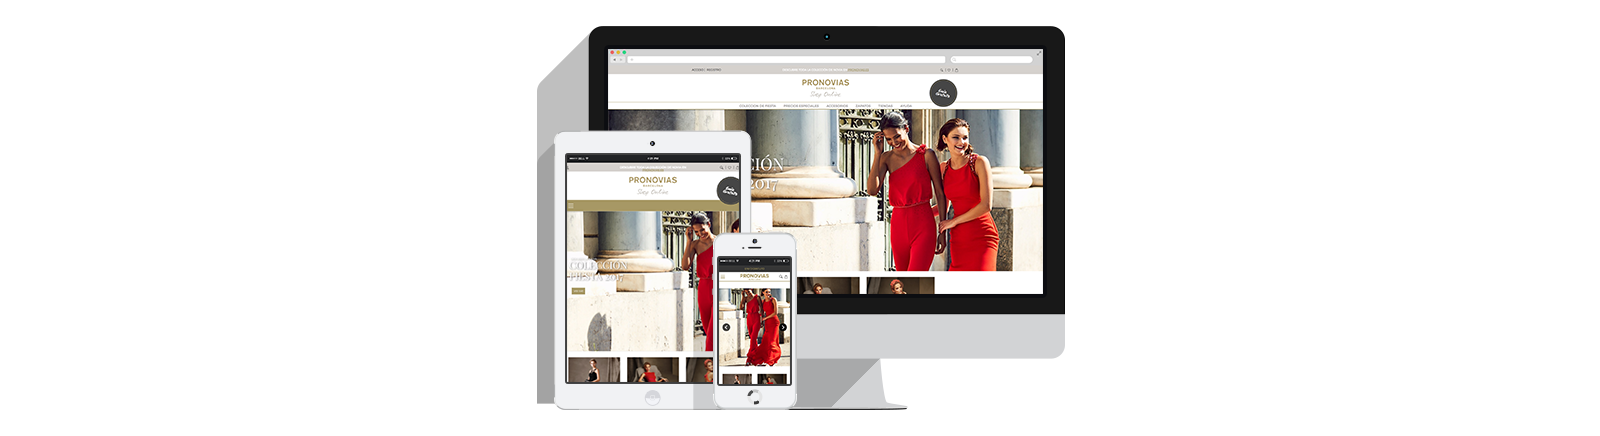 Captura_mockup_pronovias